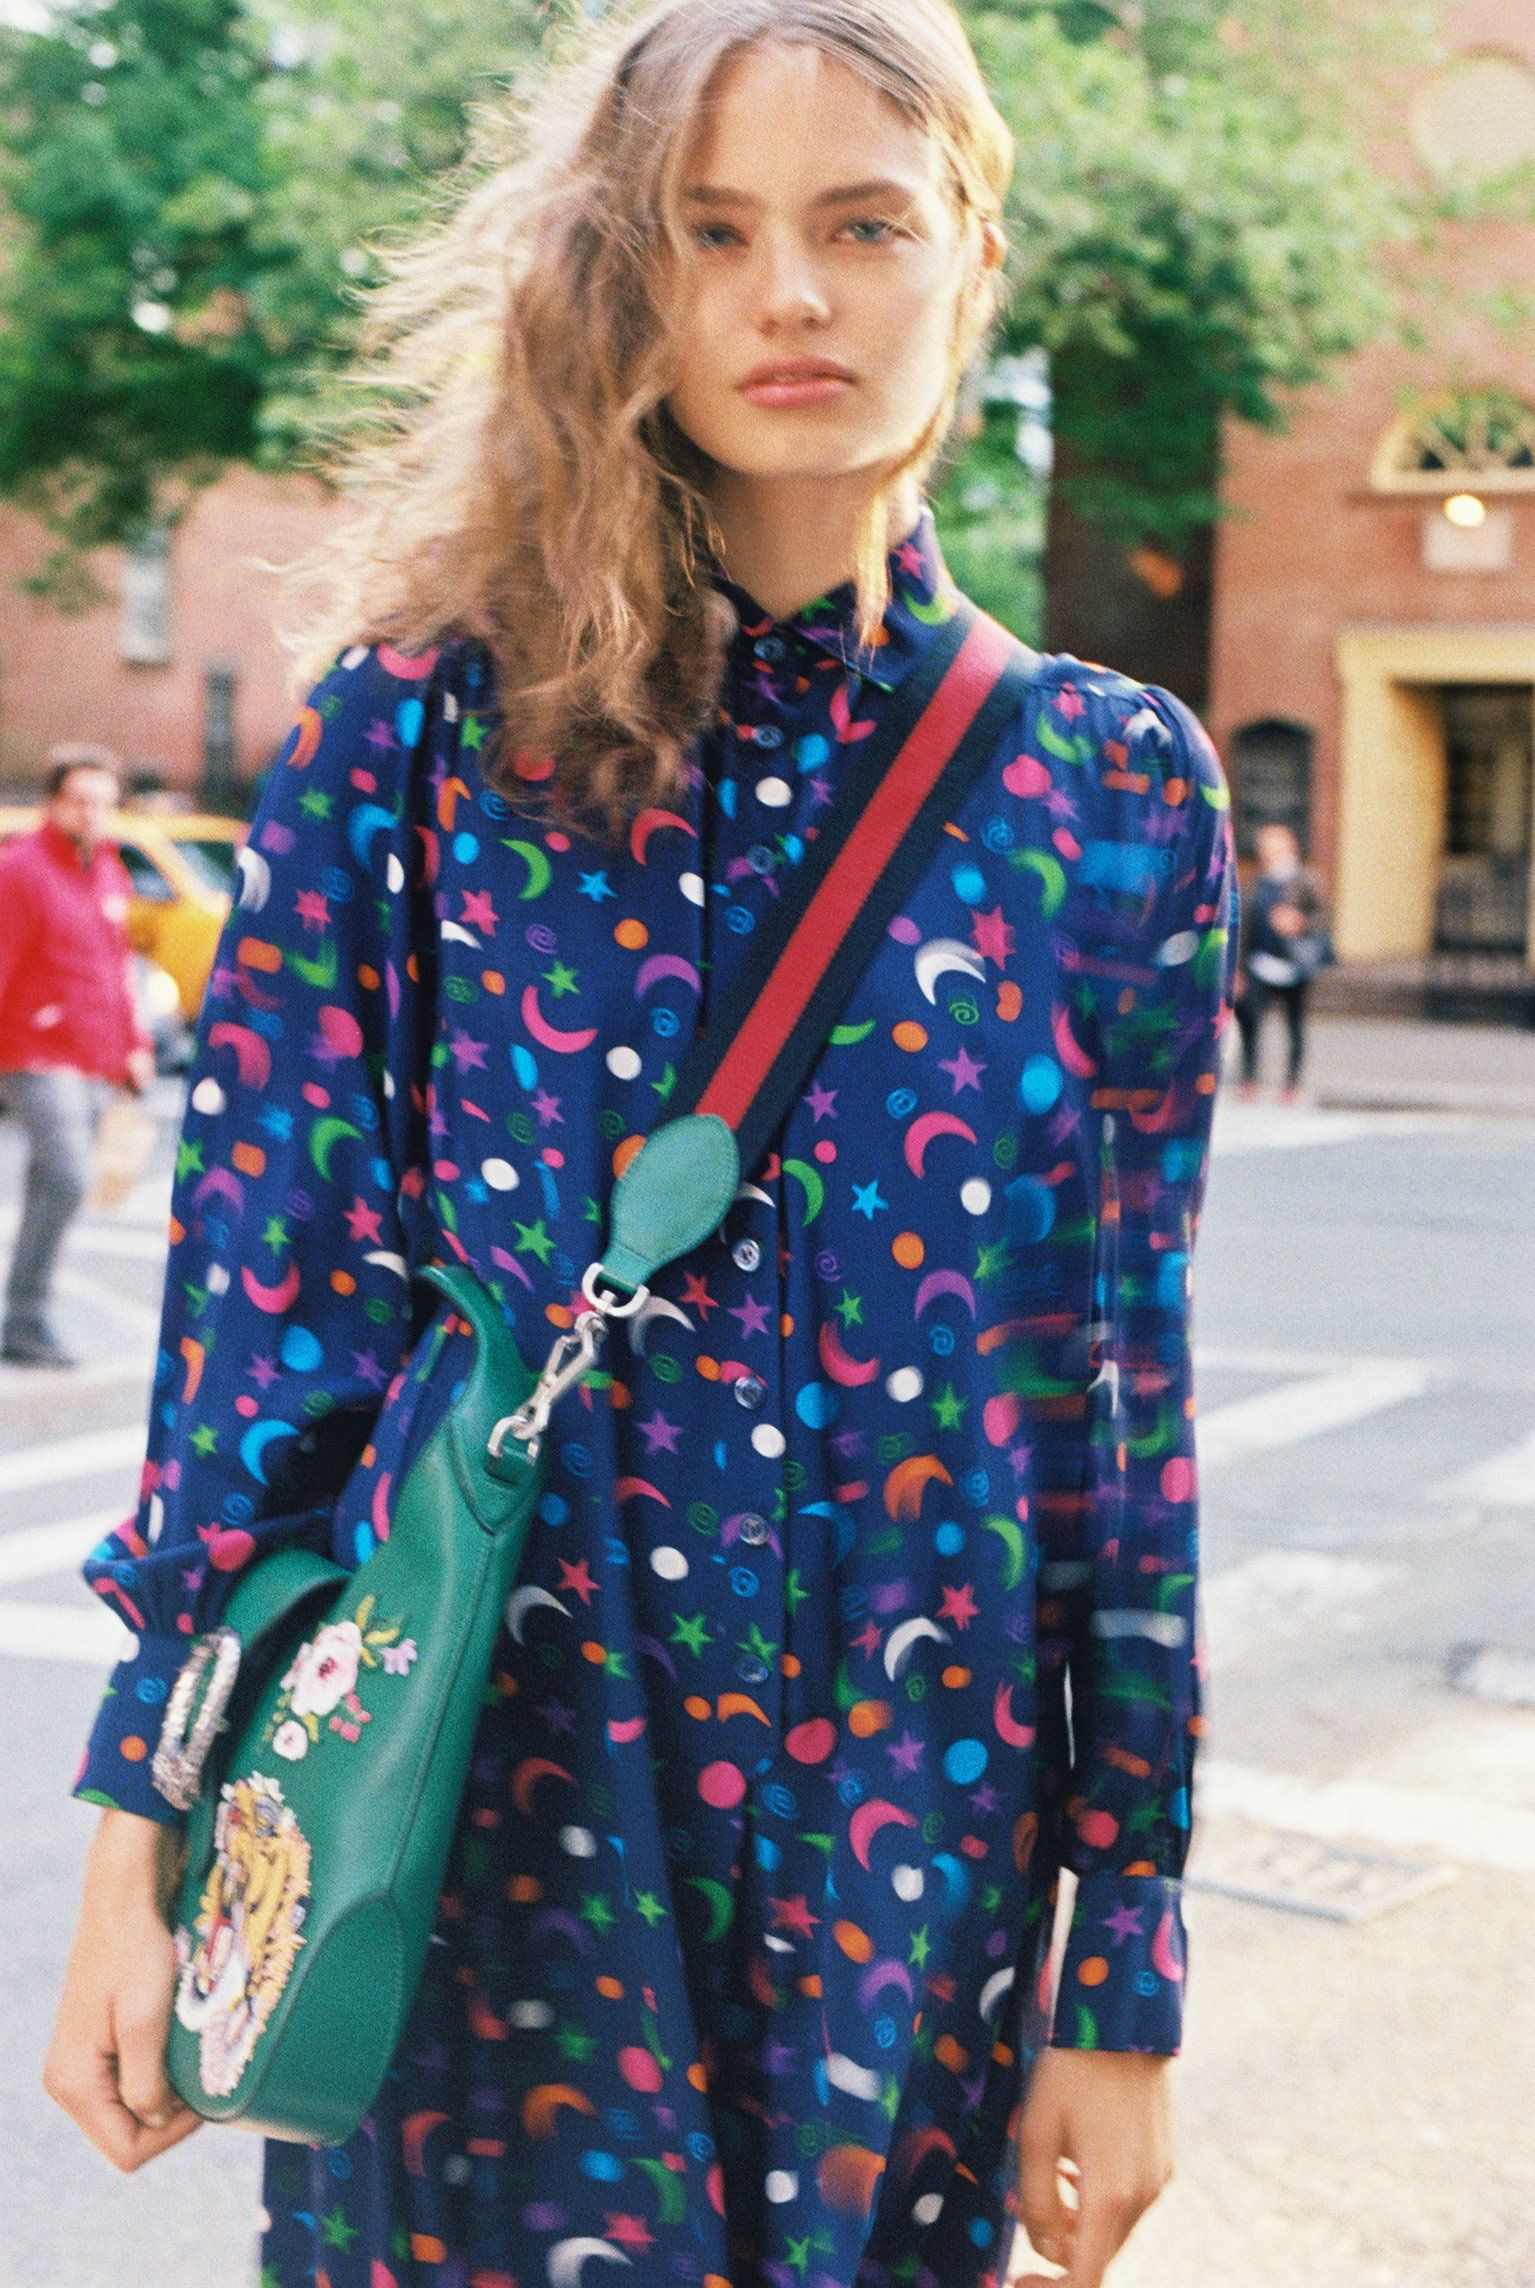 Street Style: 100 Ways to Wear Gucci | Hobo bags, Vintage dresses ...